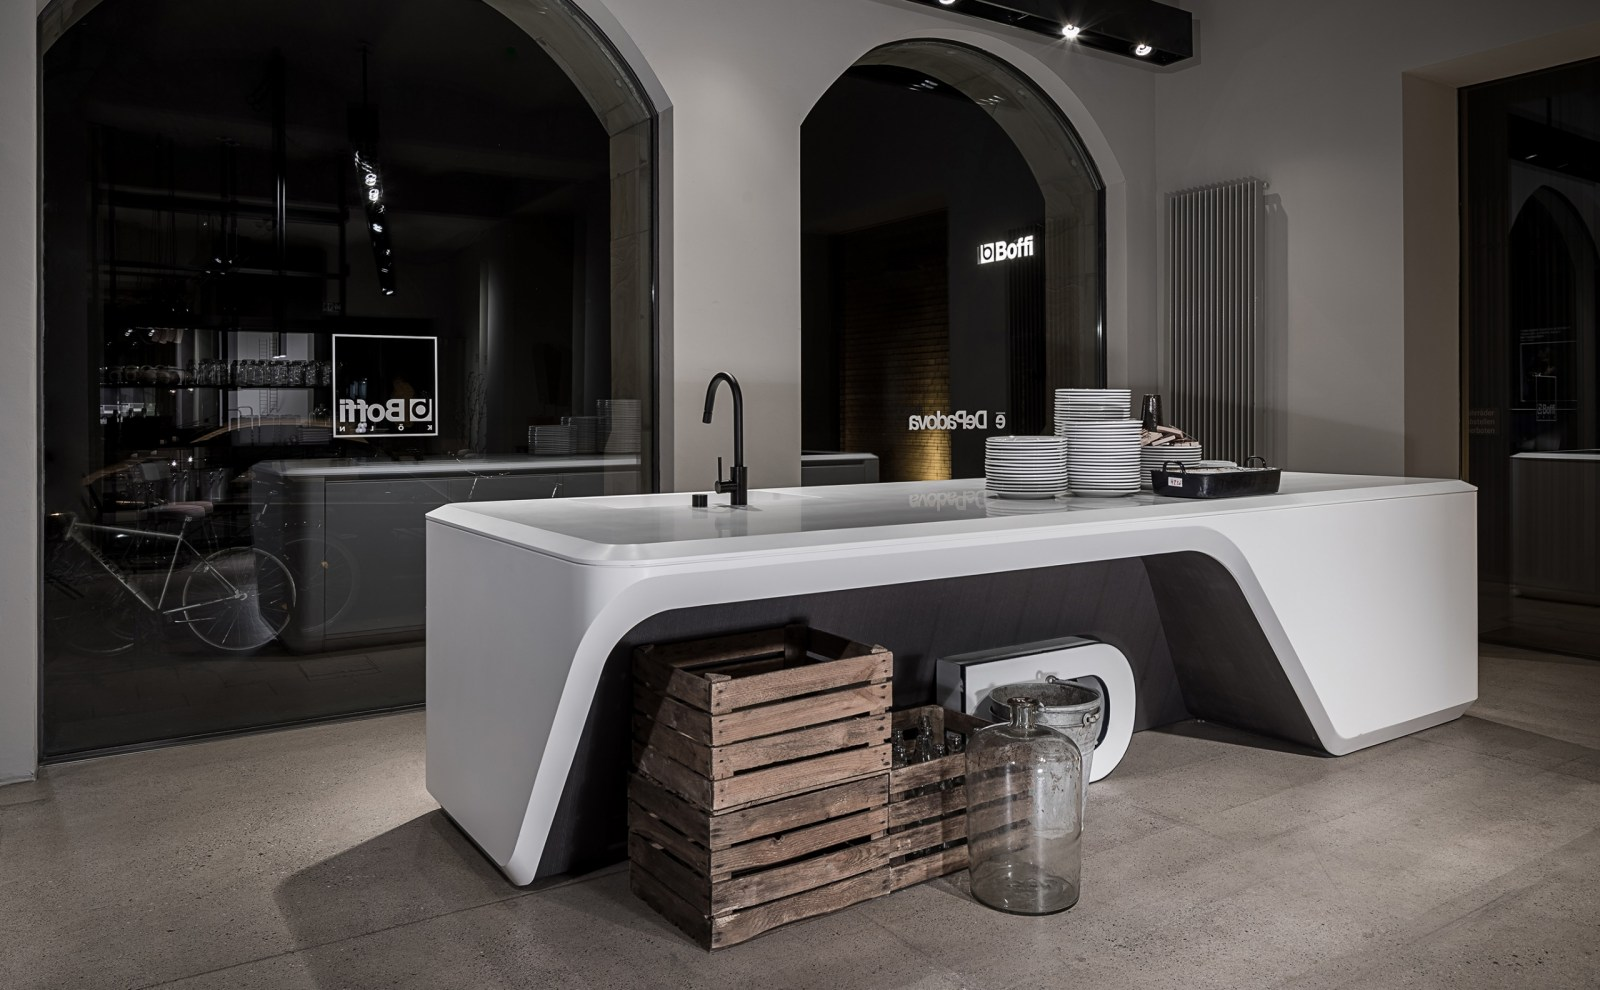 Merveilleux Cove Kitchen In Cologne | News | Boffi Official Website